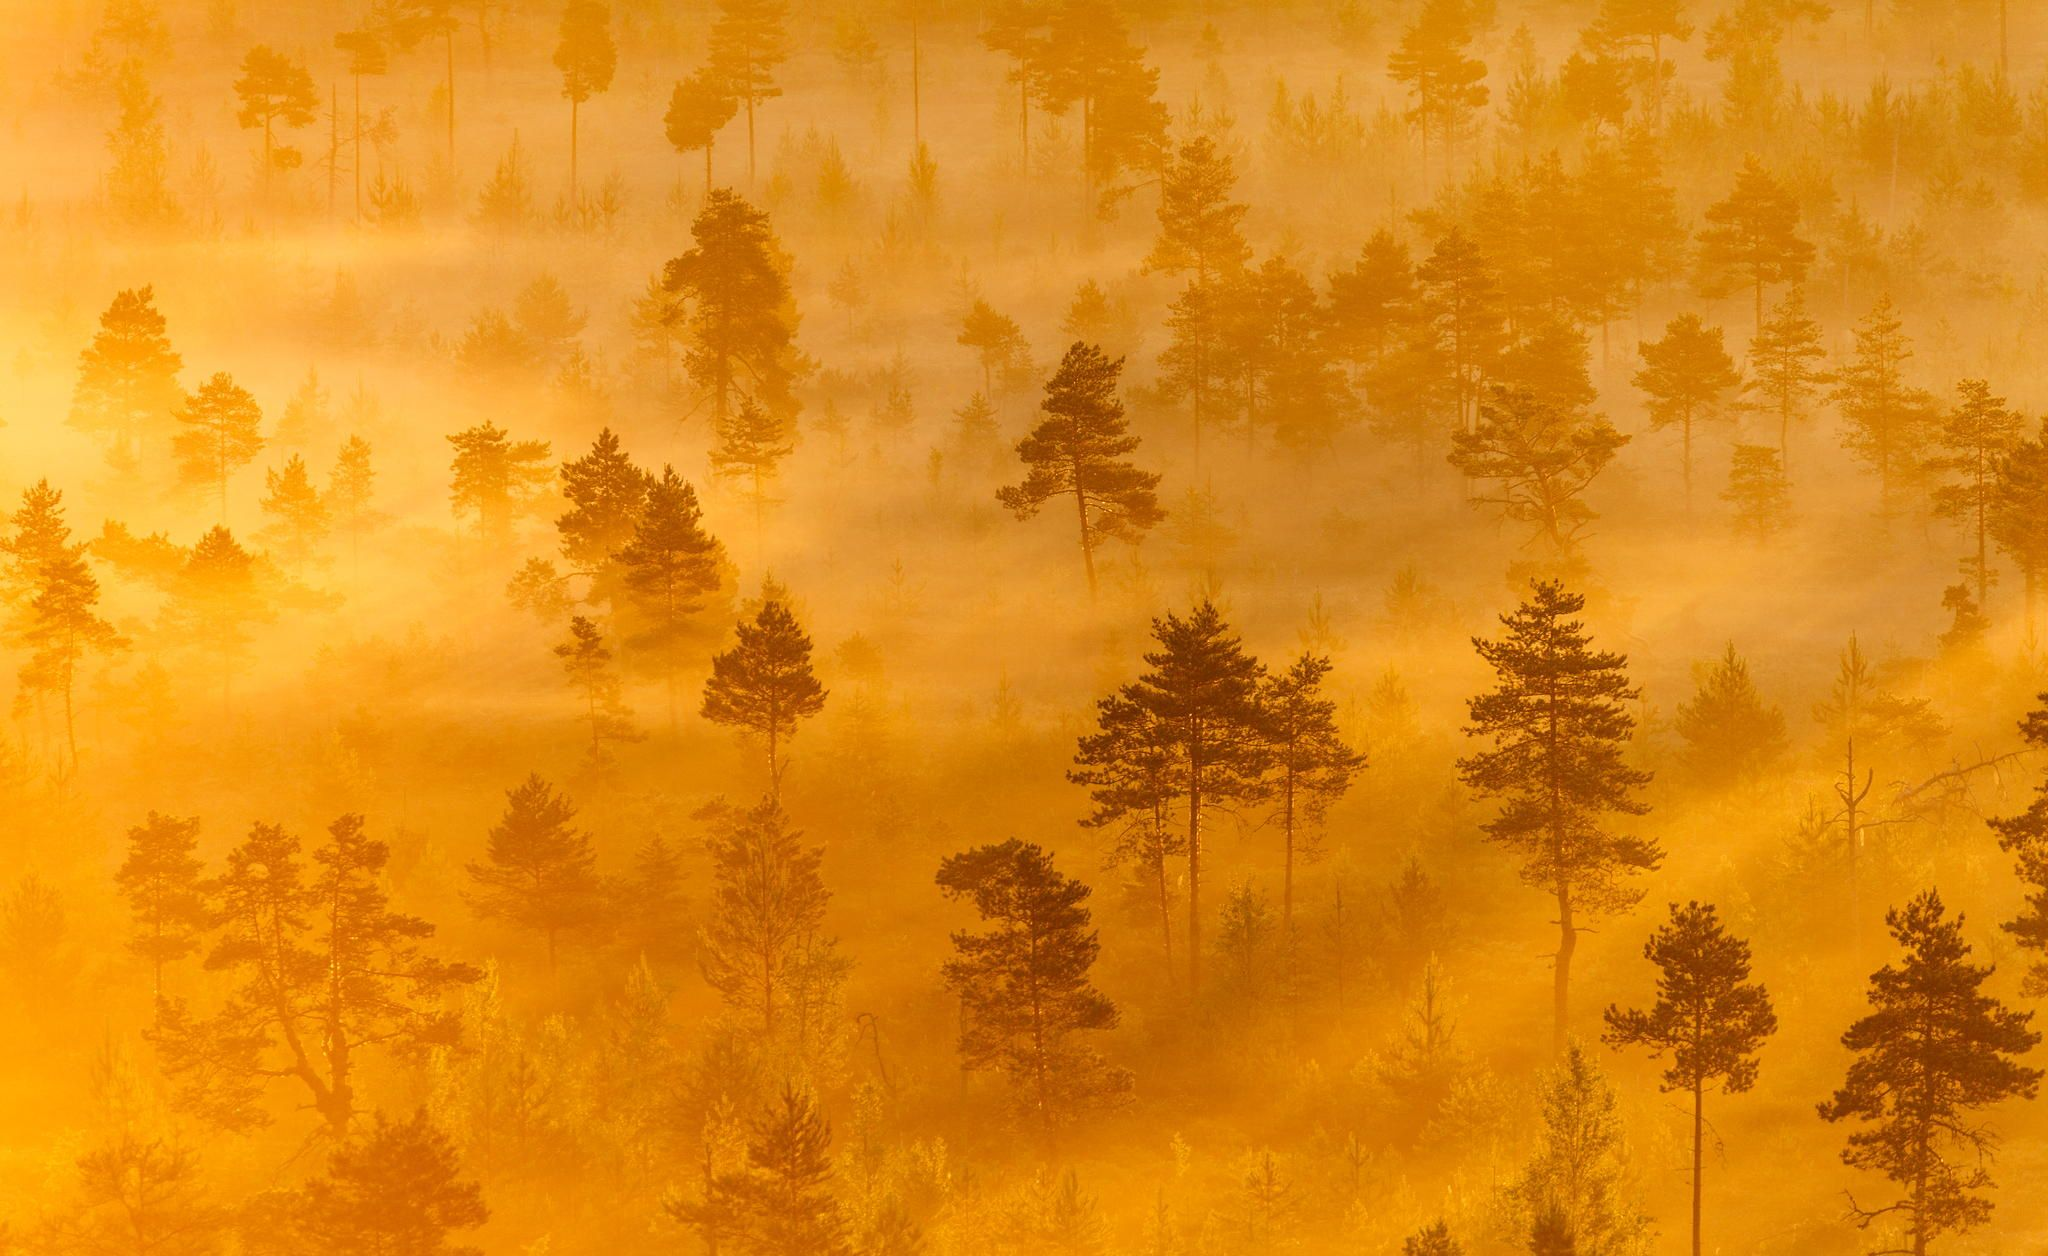 Photograph Misty Trees in the Morning by Teemu Tretjakov on 500px